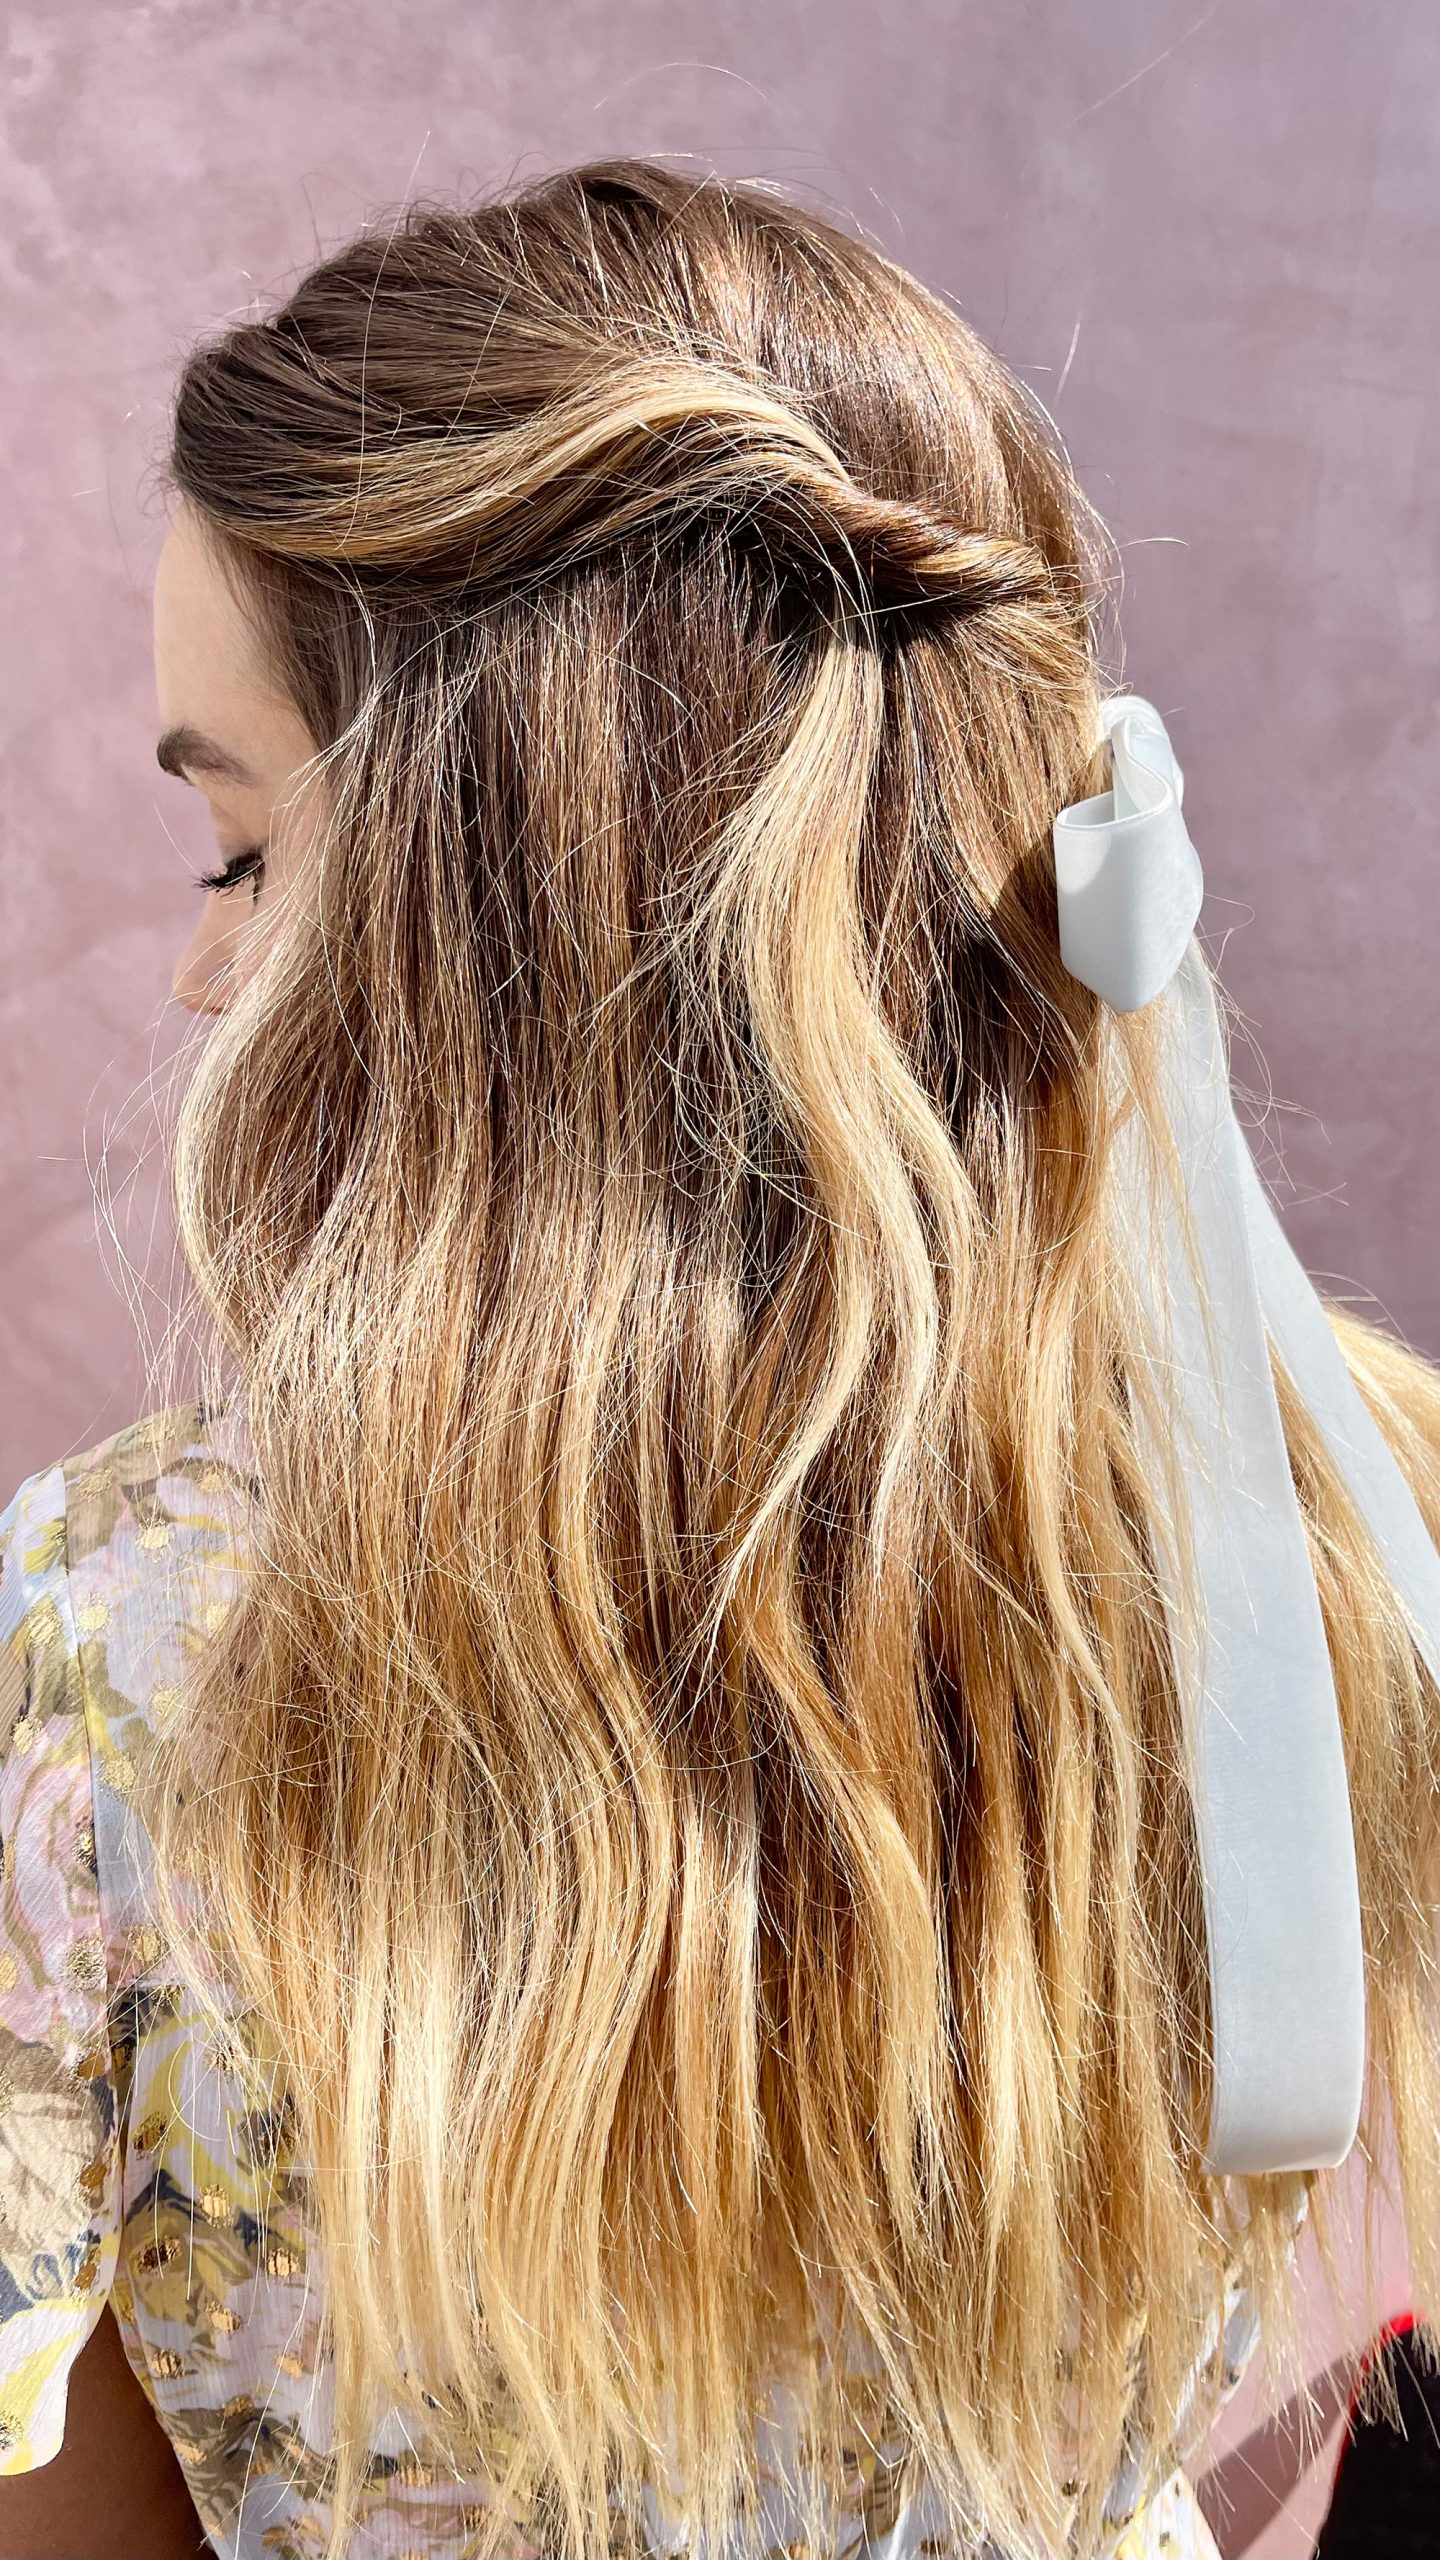 Our Editor's Favorite Hair Tools